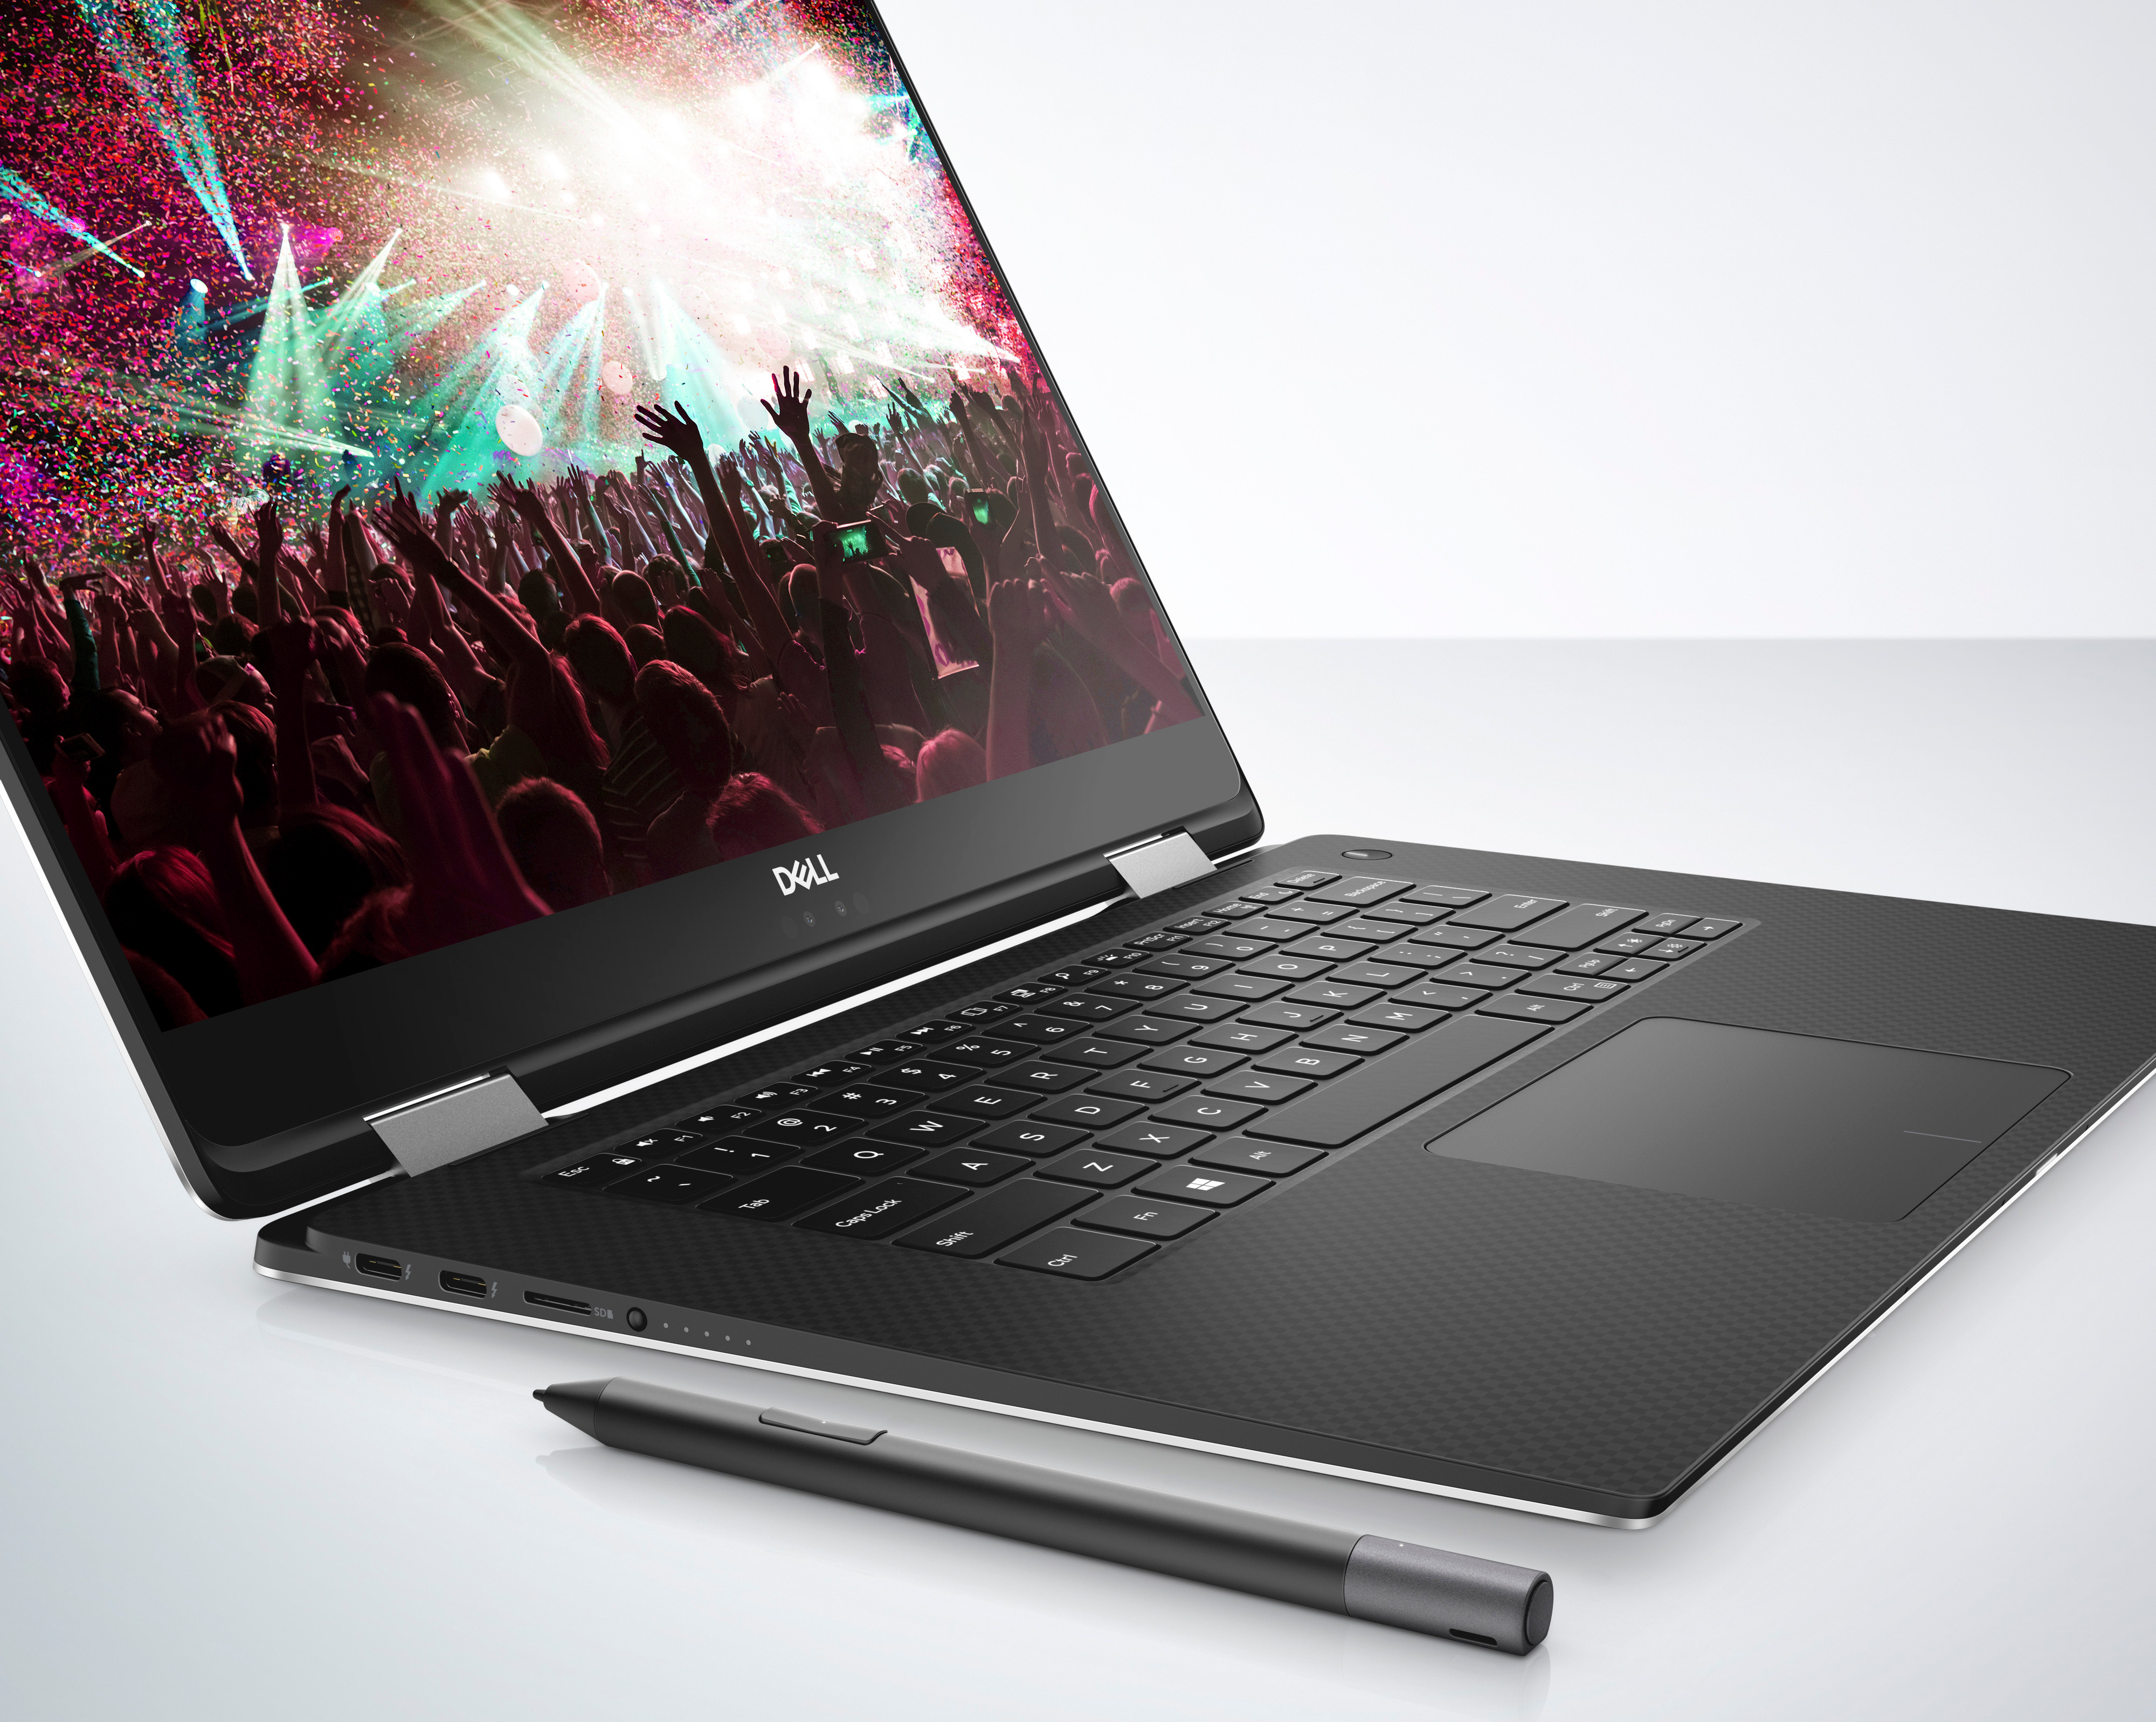 XPS 15 2-in-1 (9575) with Kaby Lake G - Dell's Spring Range